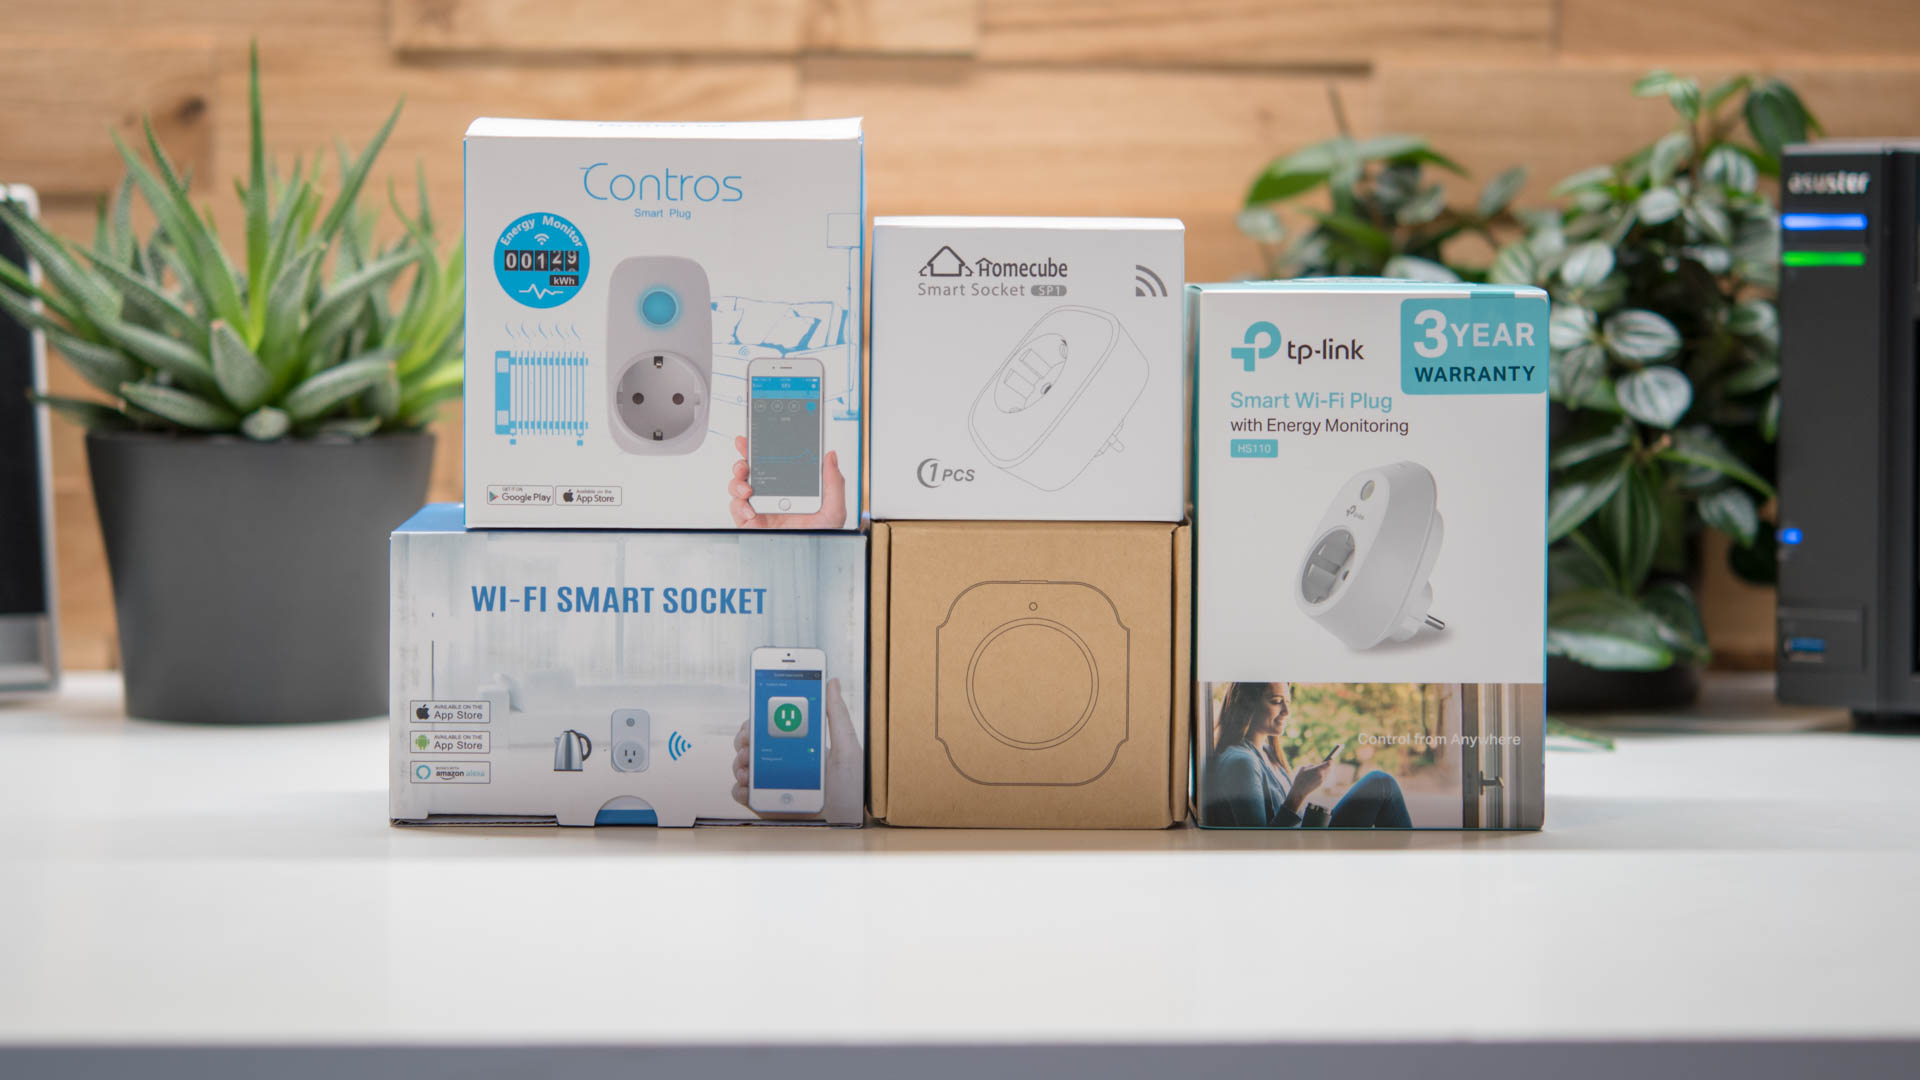 Smart Home Steckdose 5x Smart Home Steckdosen Im Test Von Tp Link Homecube